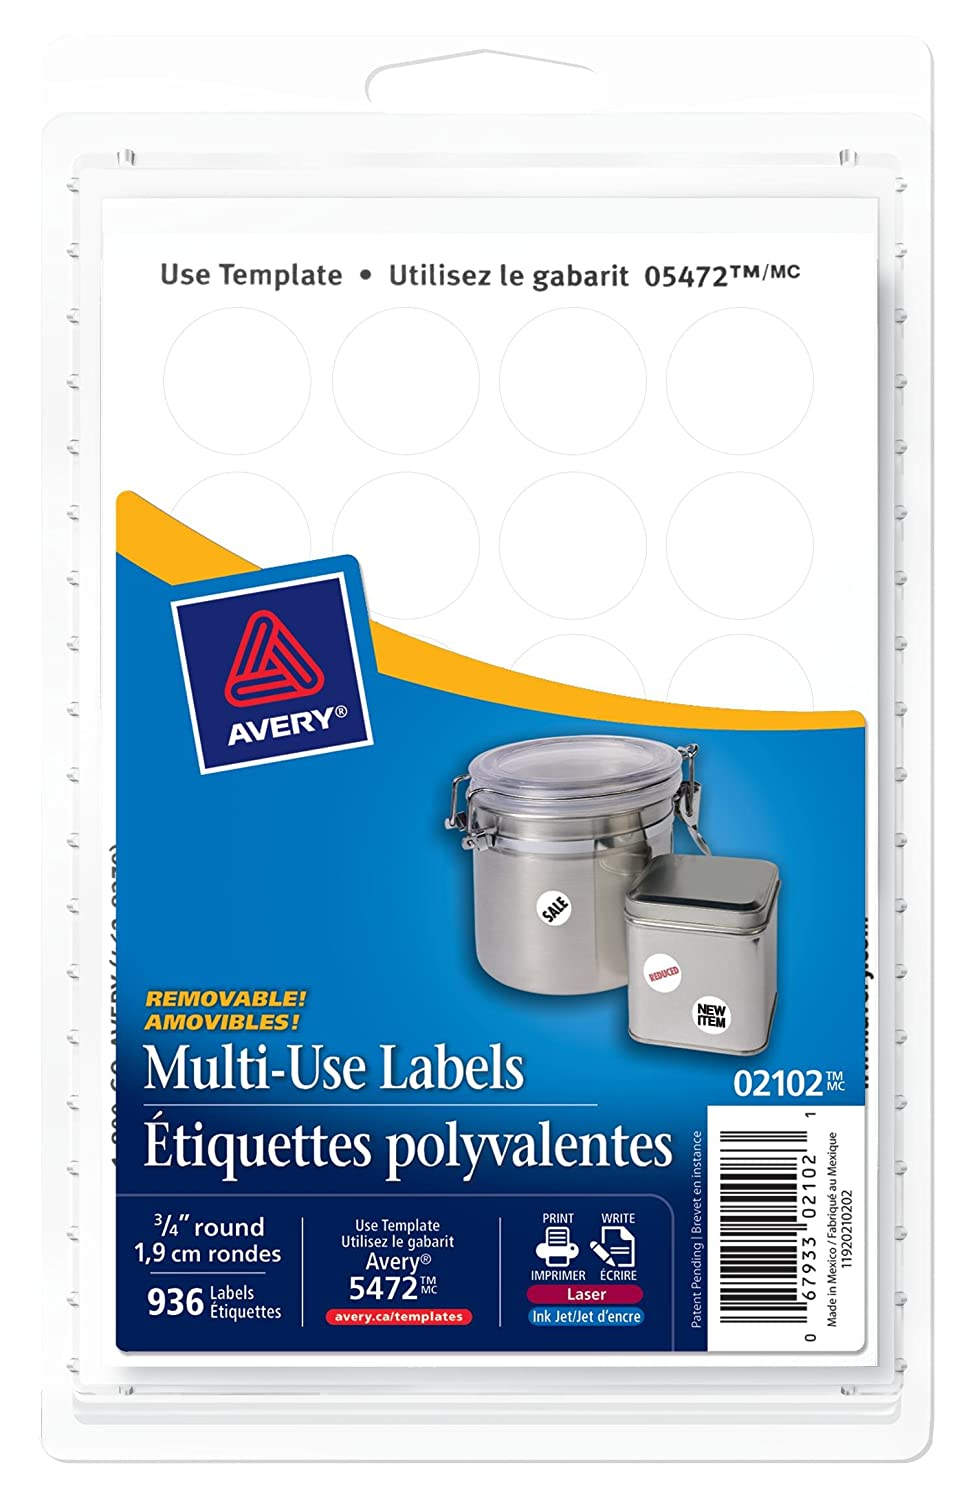 Avery multi use removable labels 34 white round 936 labels avery multi use removable labels 34 white round 936 labels removable 2102 amazon office products pronofoot35fo Images